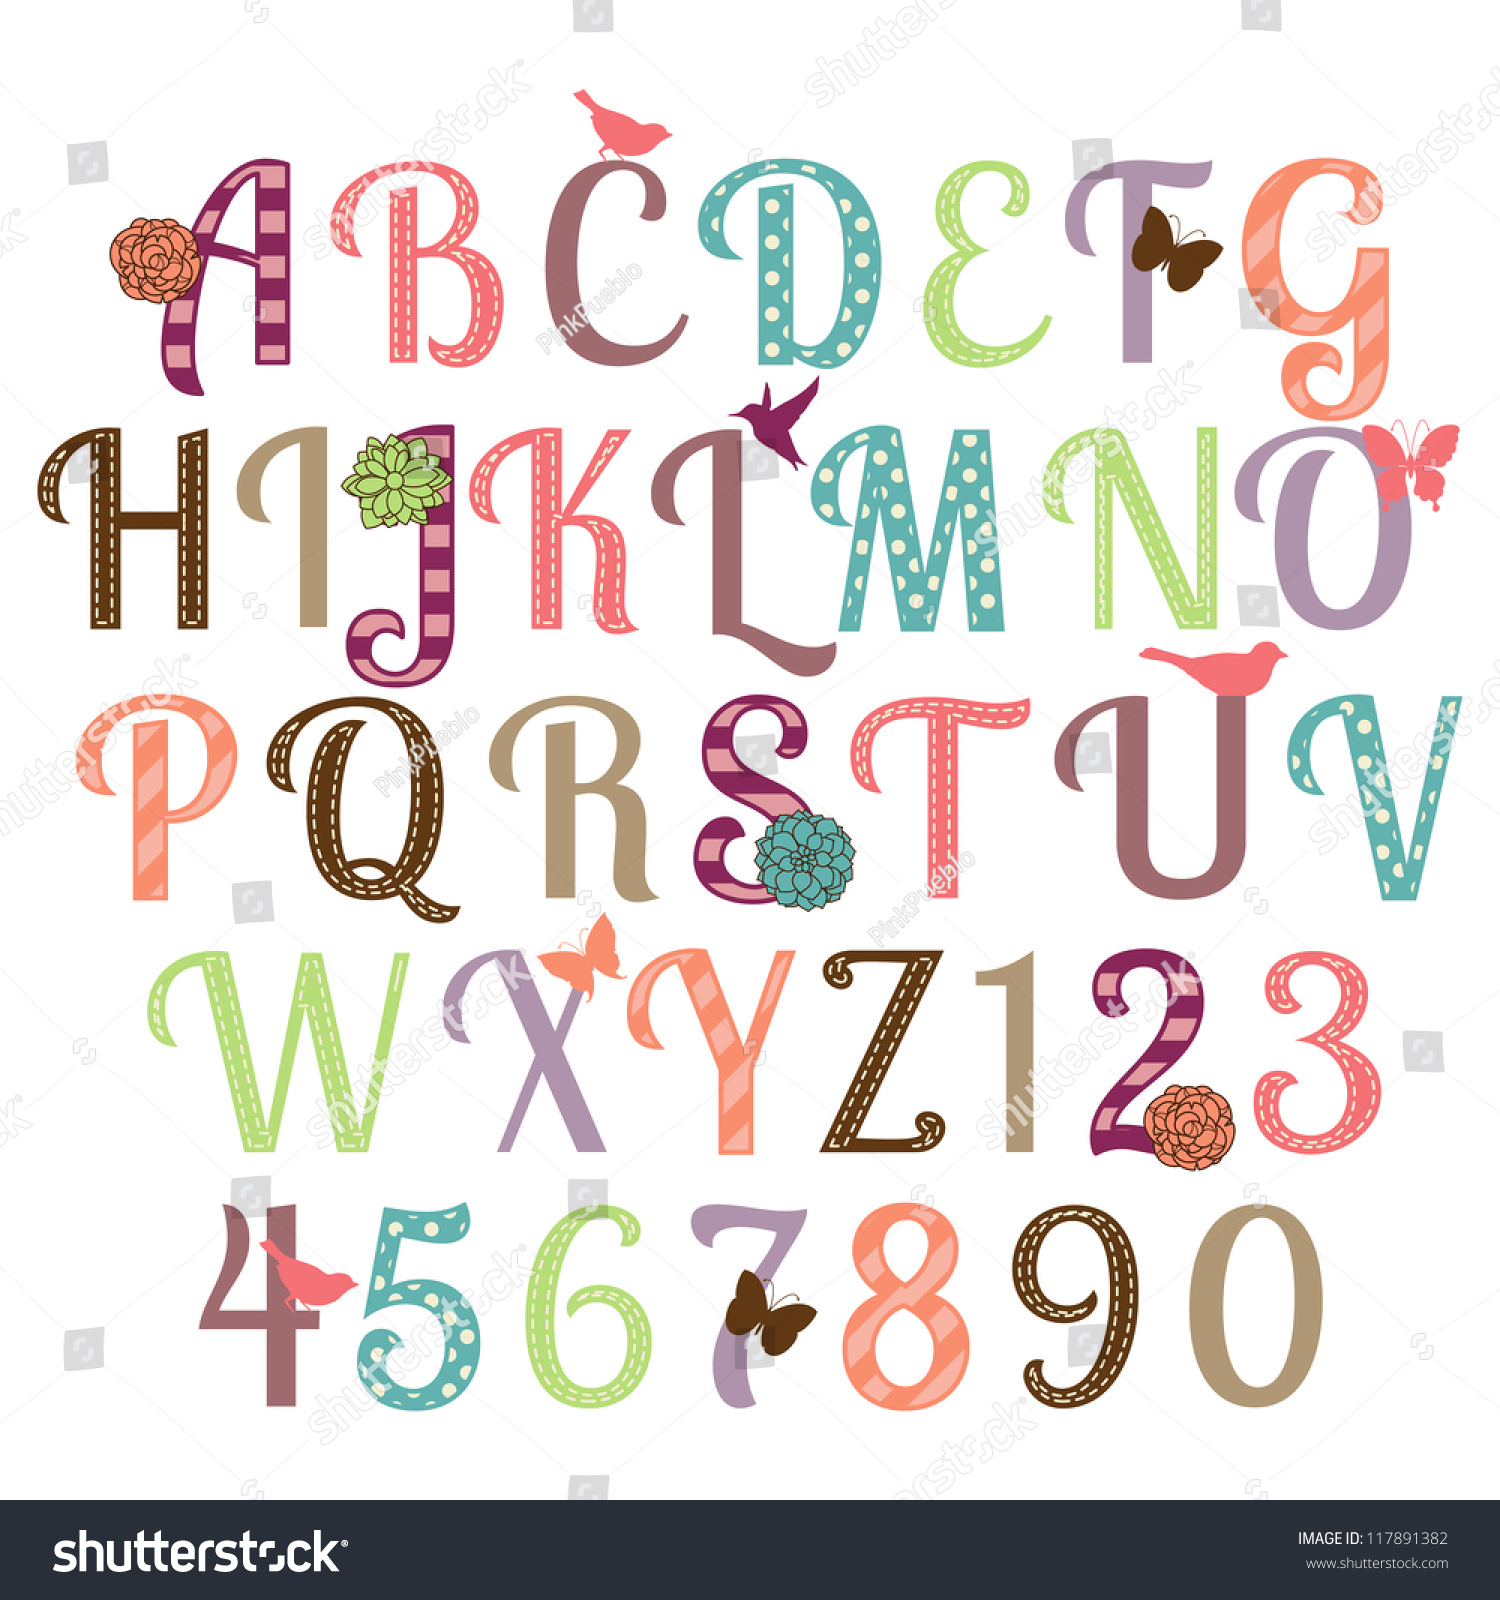 girly letters, the gallery for --> girly font alphabet